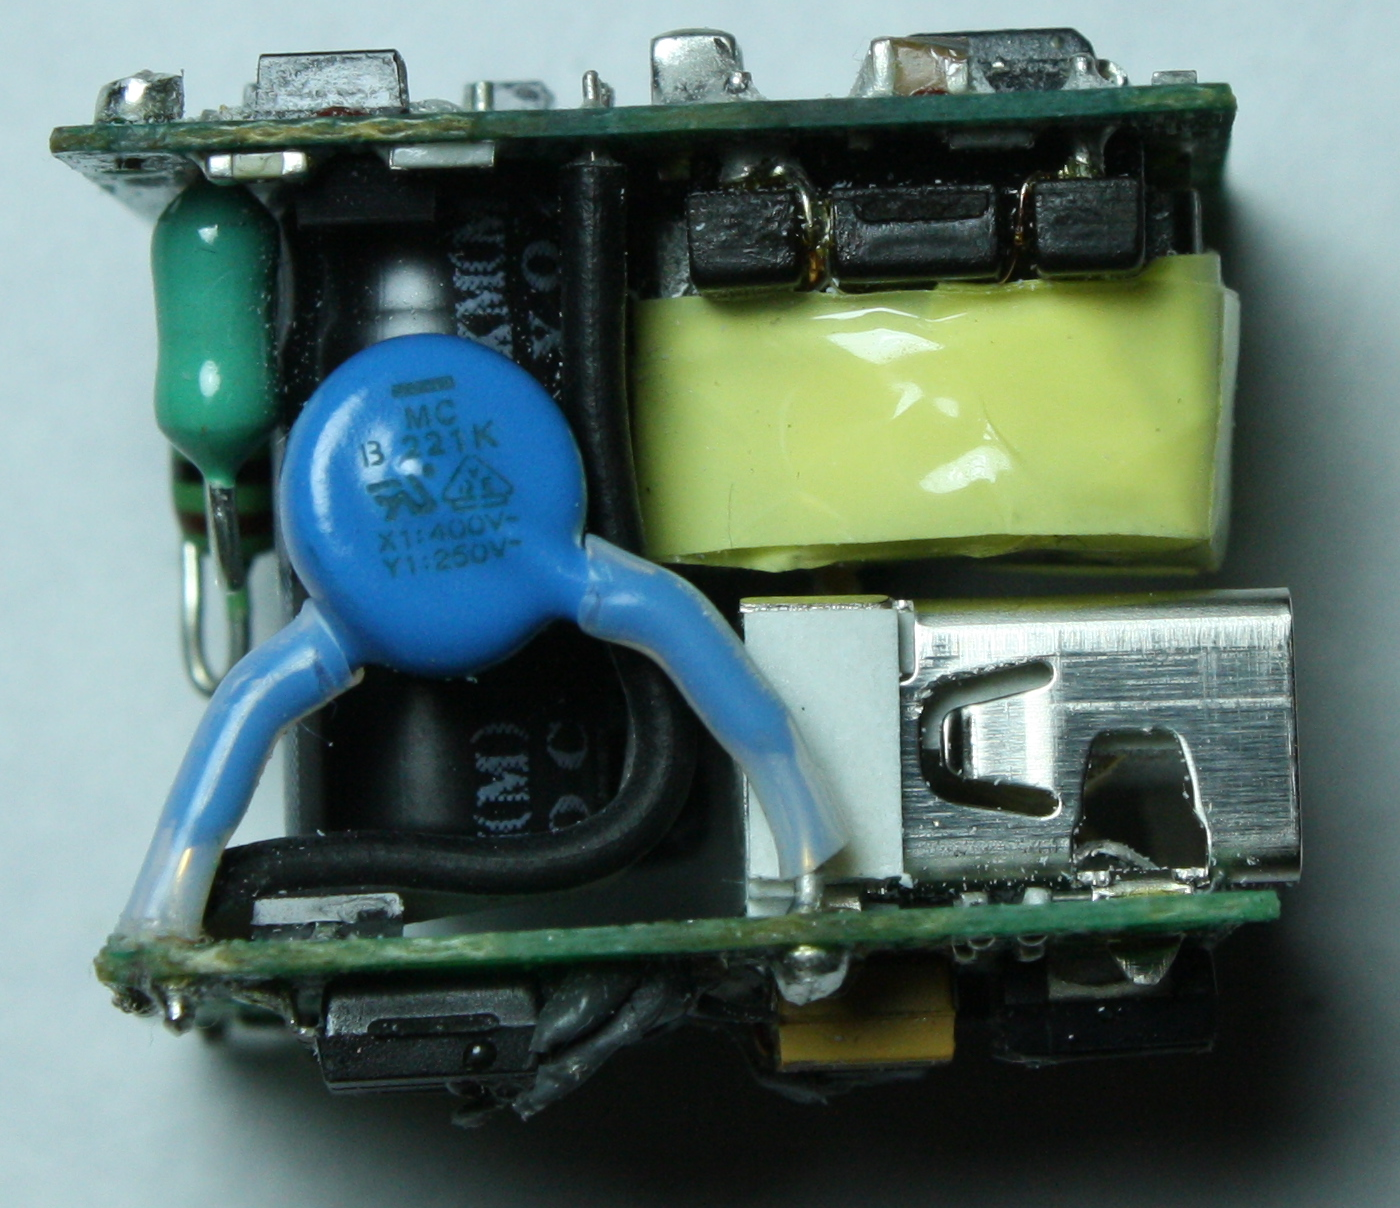 Apple Iphone Charger Teardown Quality In A Tiny Expensive Package On The Troubleshooting And Repair Of Small Switchmode Power Supplies Inside Input Inductor Green Y Capacitor Blue